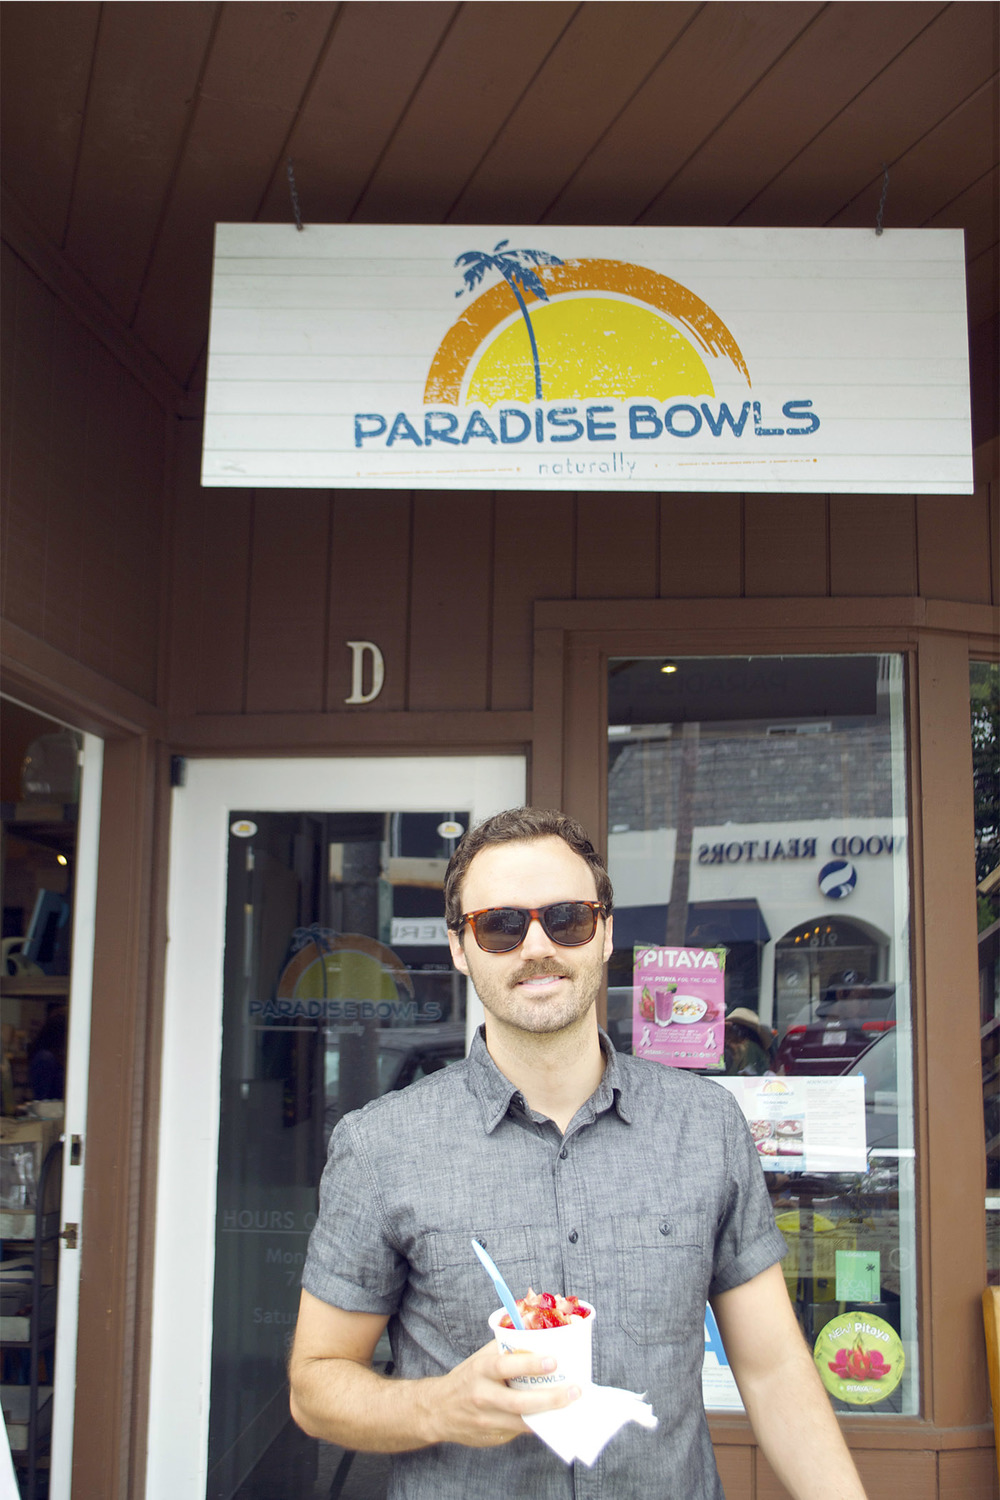 paradise bowls manhattan beach